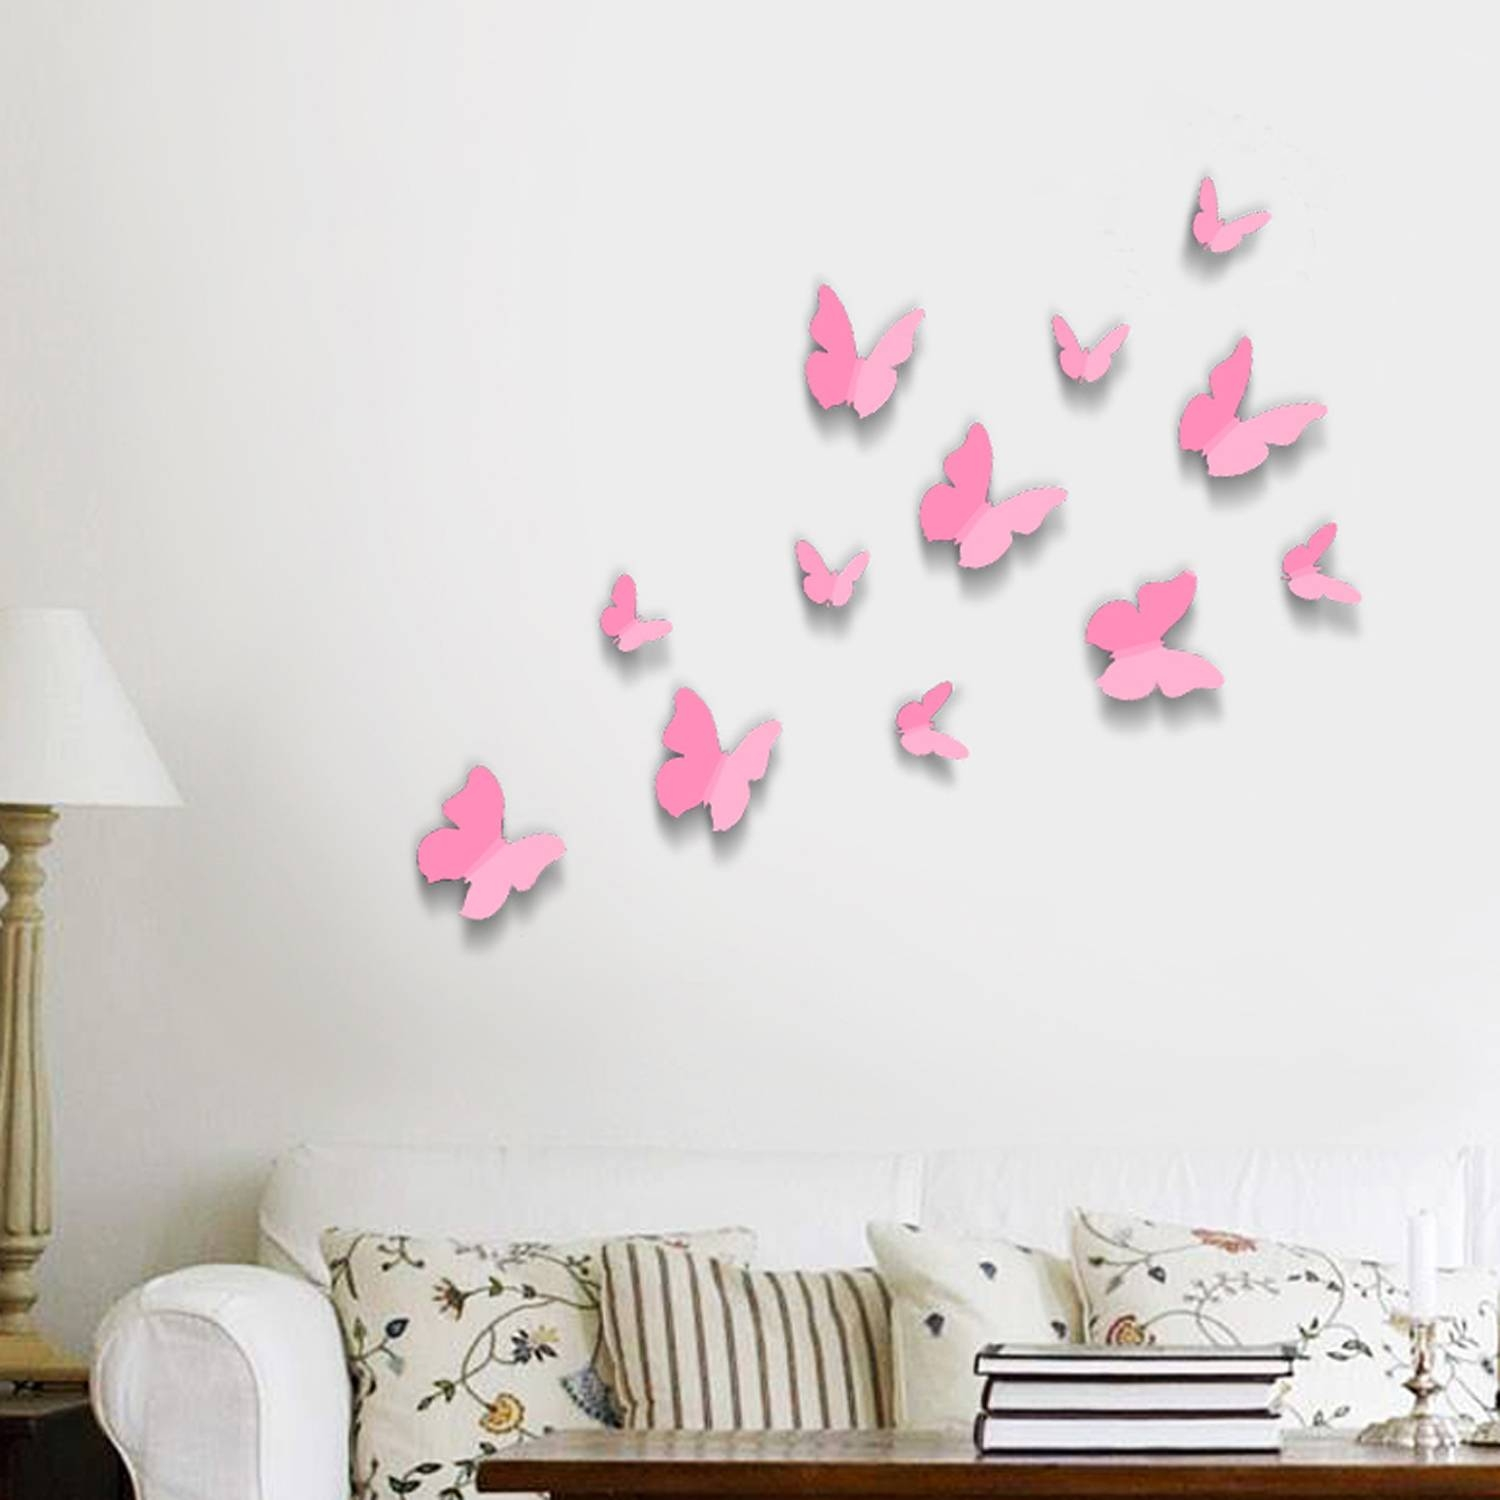 Pink 3d Butterflies Wall Art Stickers Throughout Recent 3d Butterfly Wall Art (View 4 of 20)